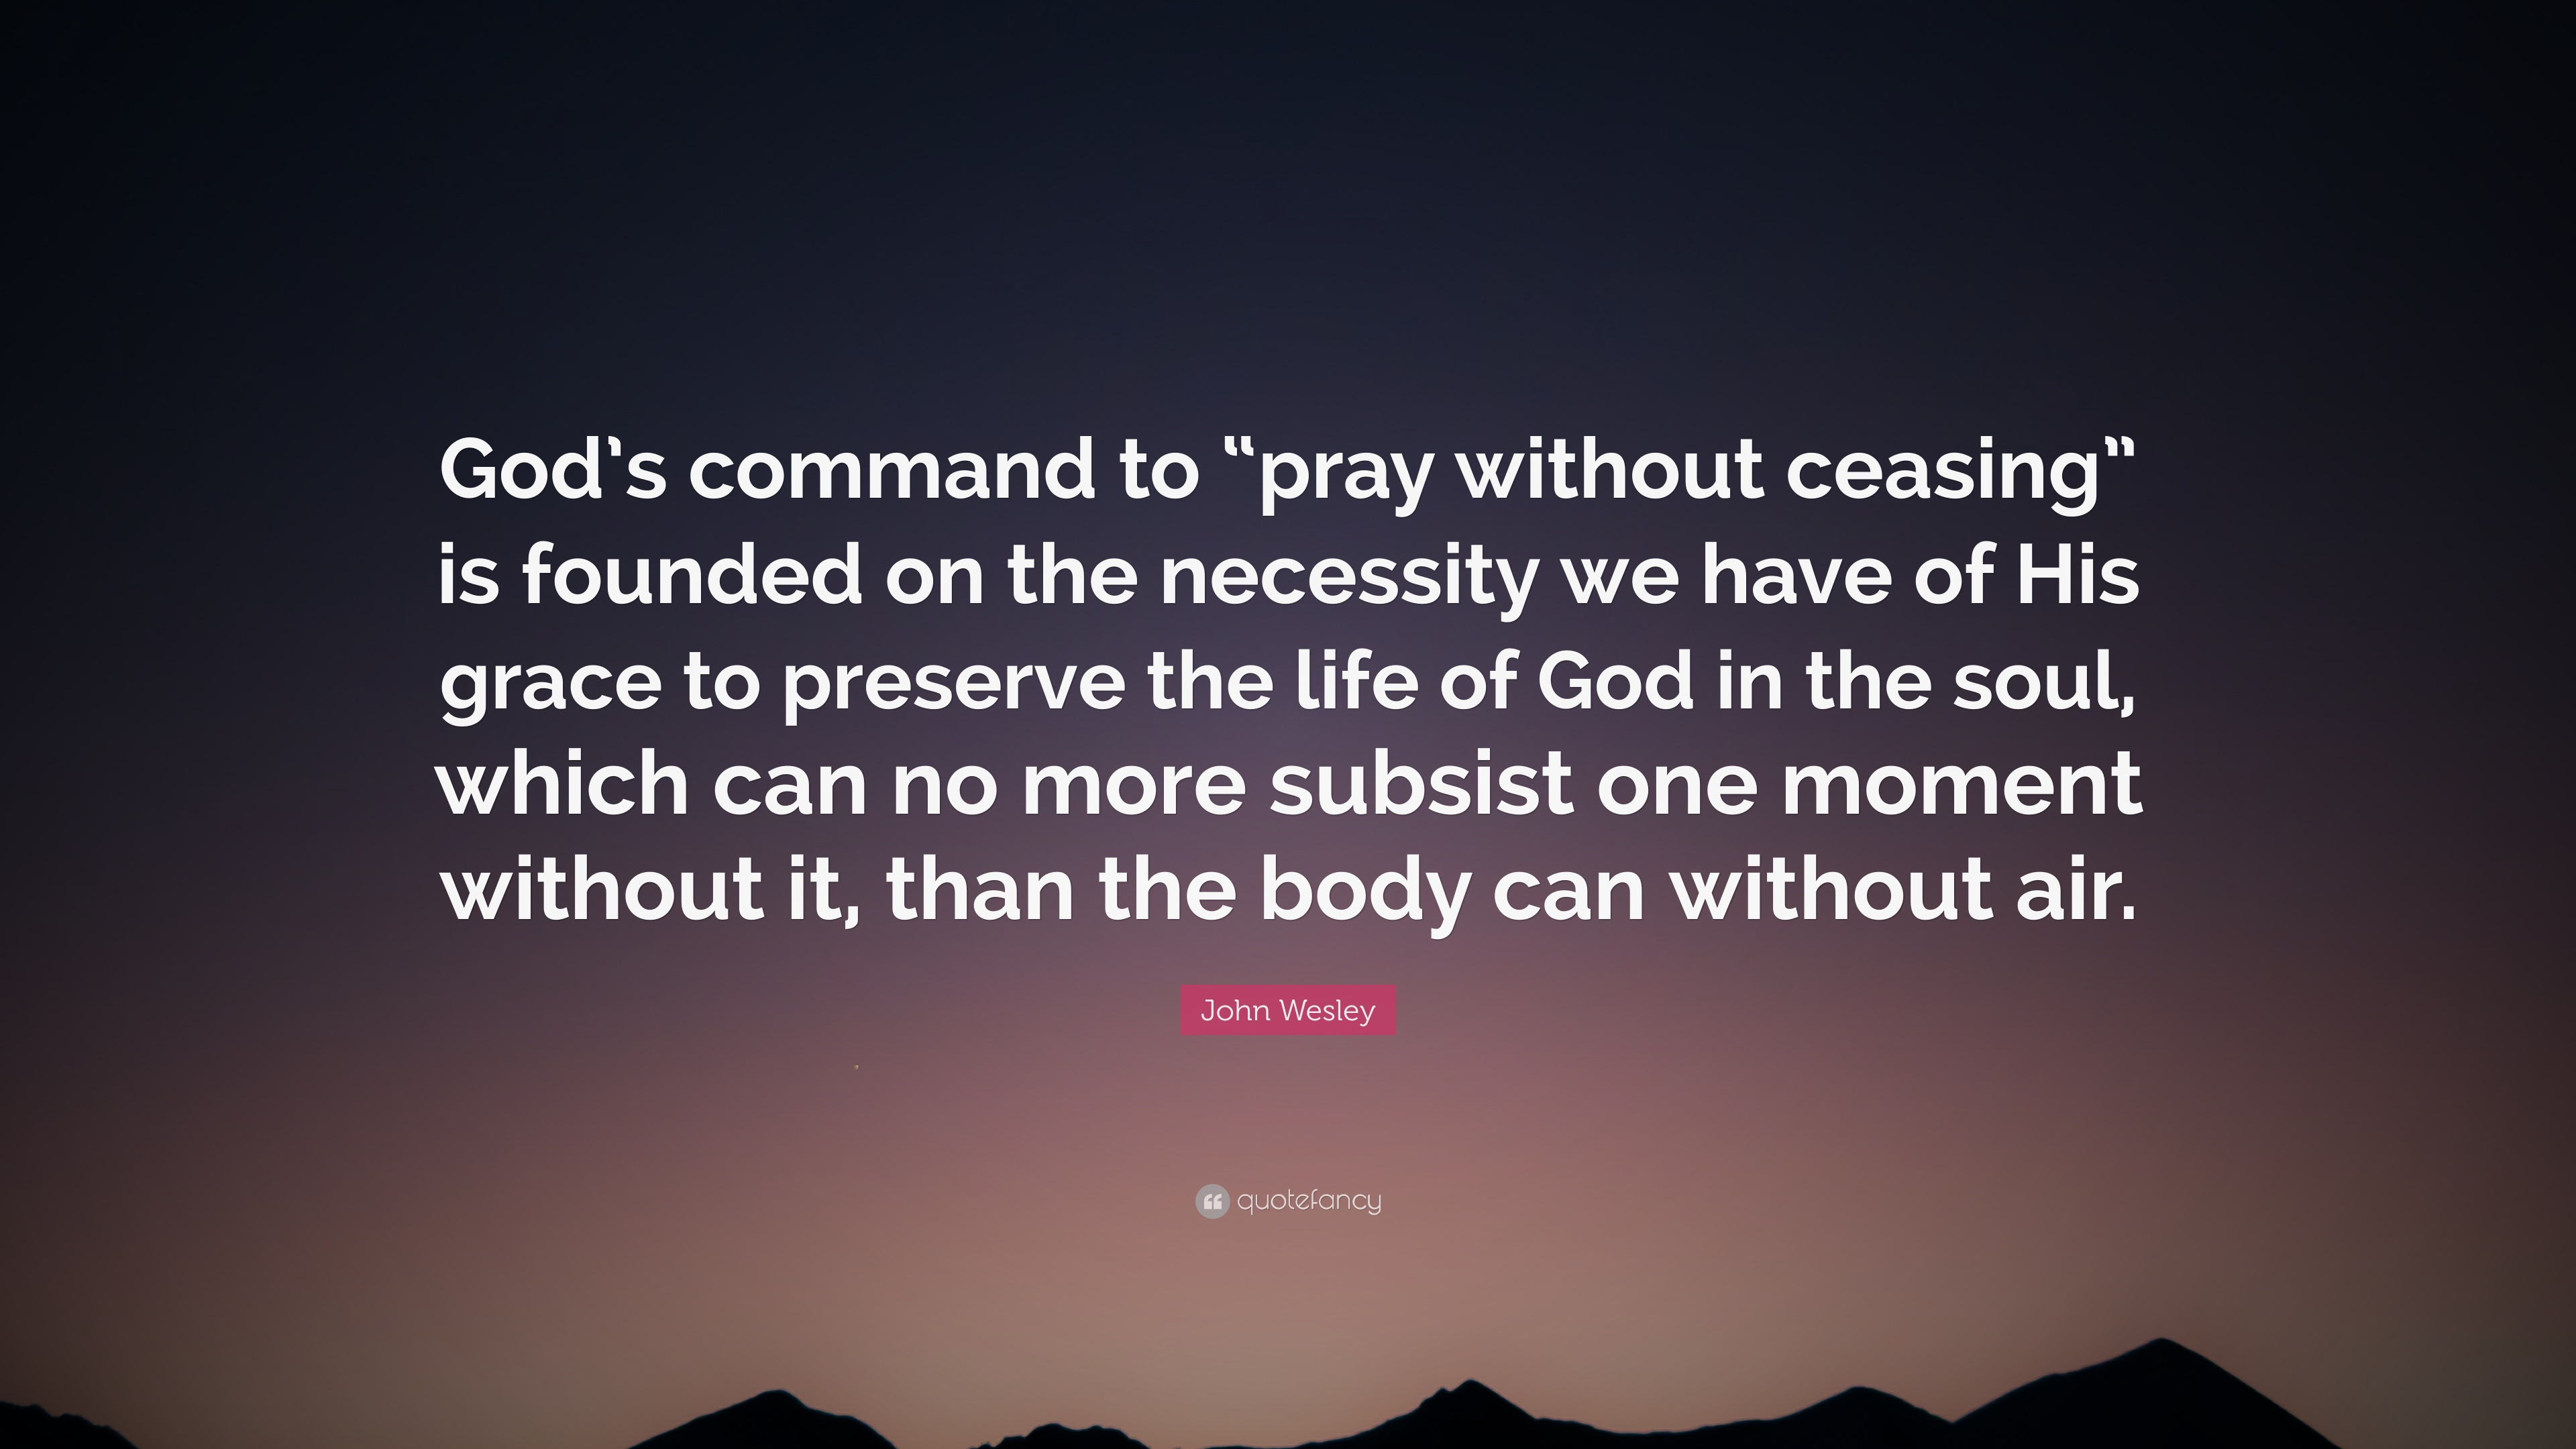 """John Wesley Quotes John Wesley Quote: """"God's command to """"pray without ceasing"""" is  John Wesley Quotes"""